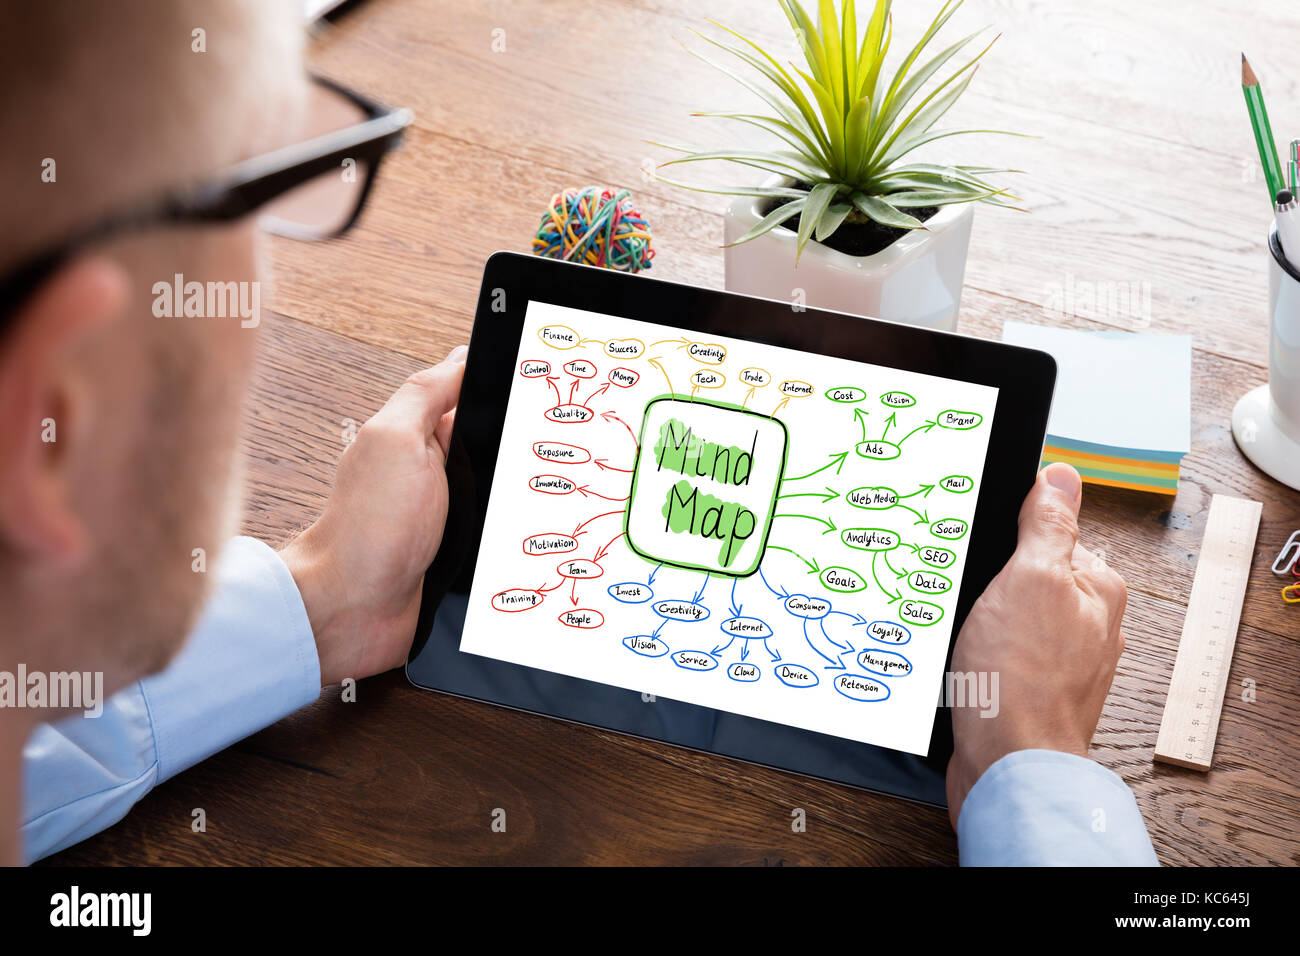 Close-up Of A Businessperson Holding Digital Tablet Showing Mind Map Concept On Wooden Desk Stock Photo